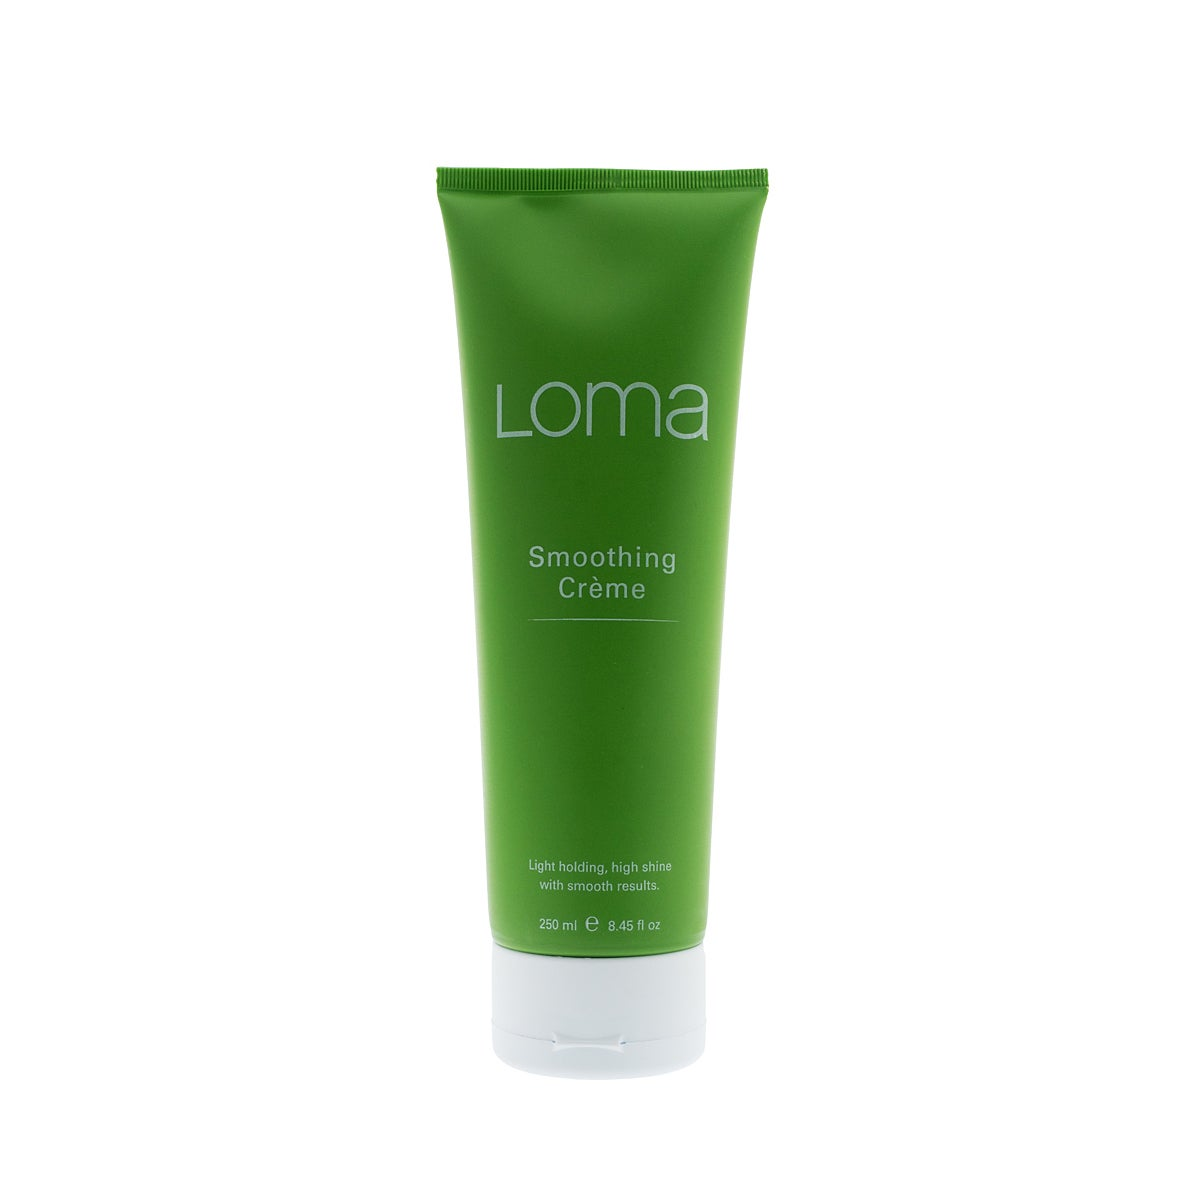 Loma Smoothing Creme